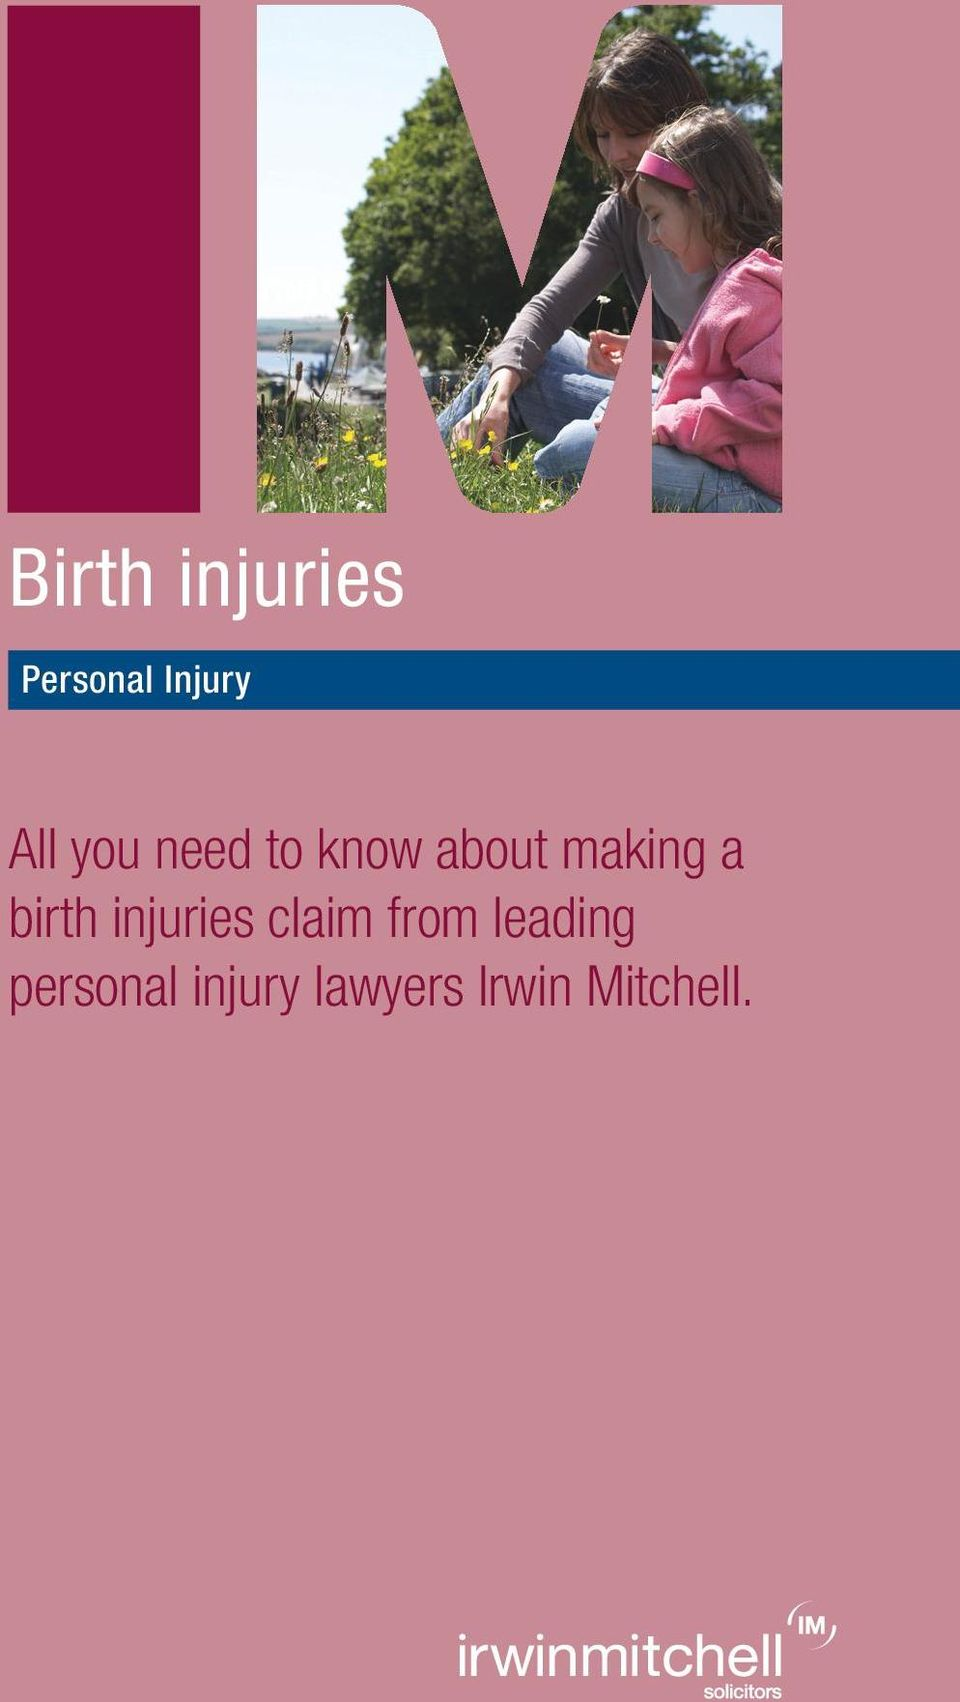 birth injuries claim from leading